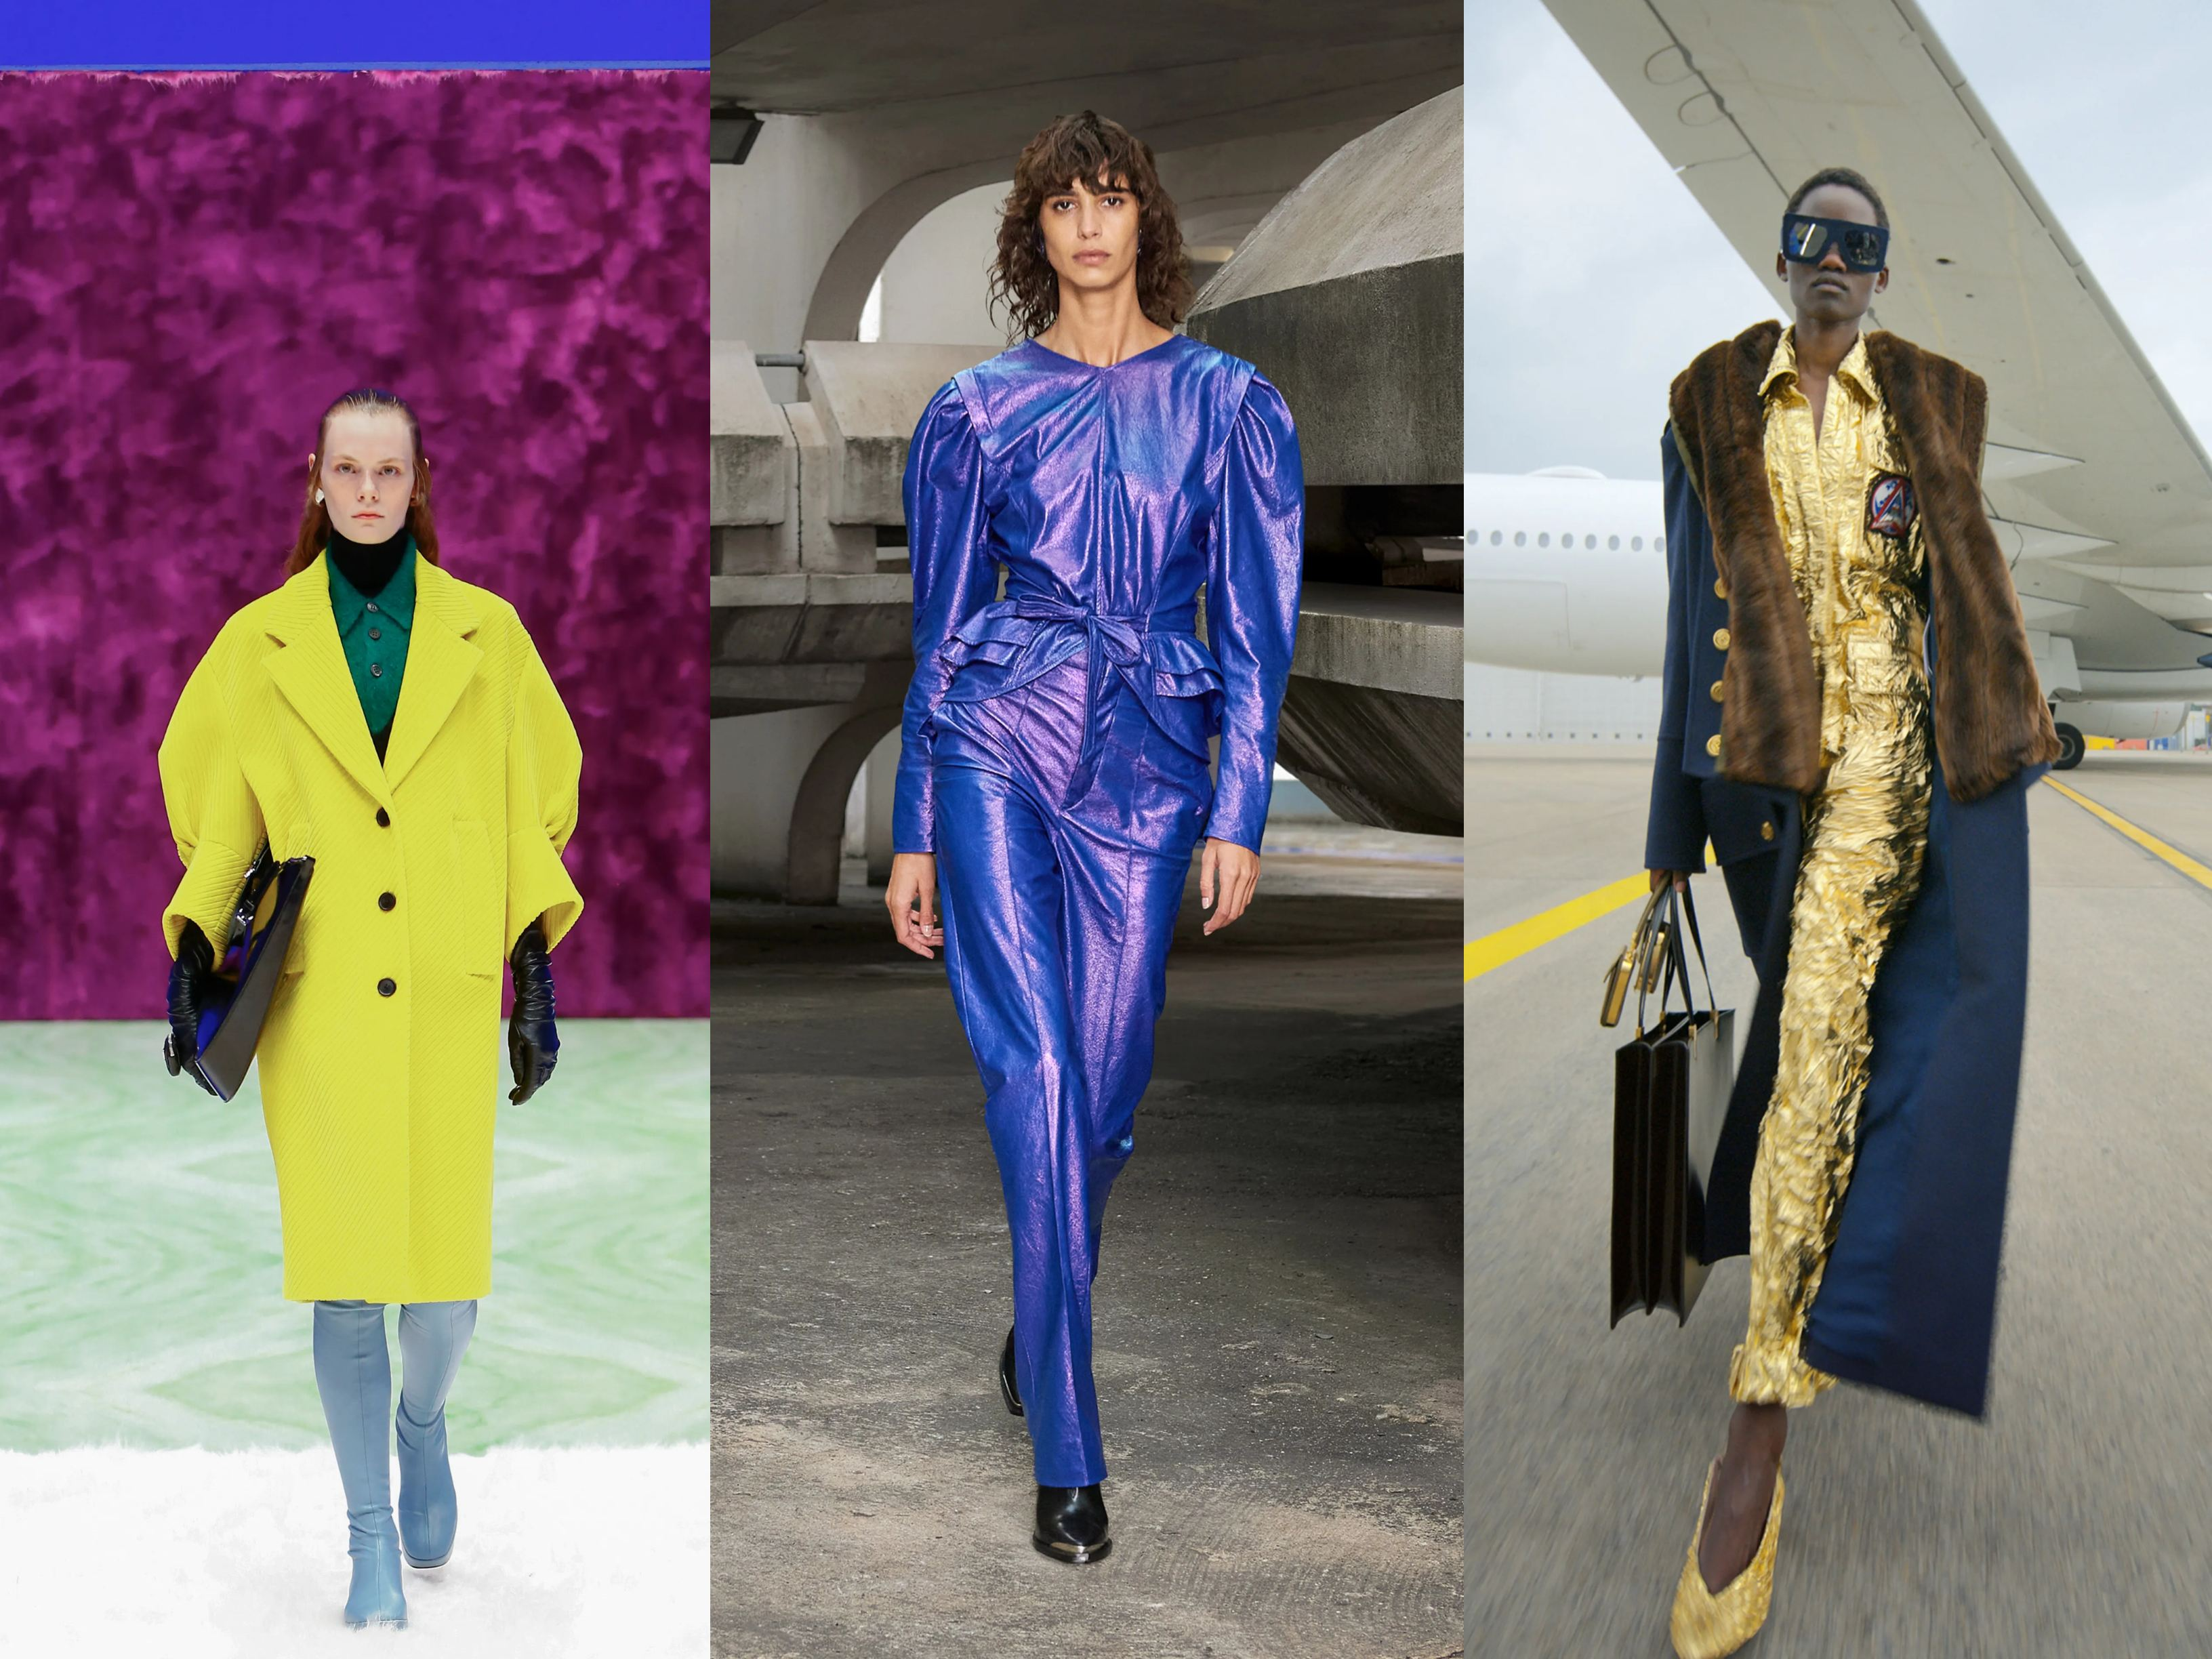 Models wearing AW21 trends